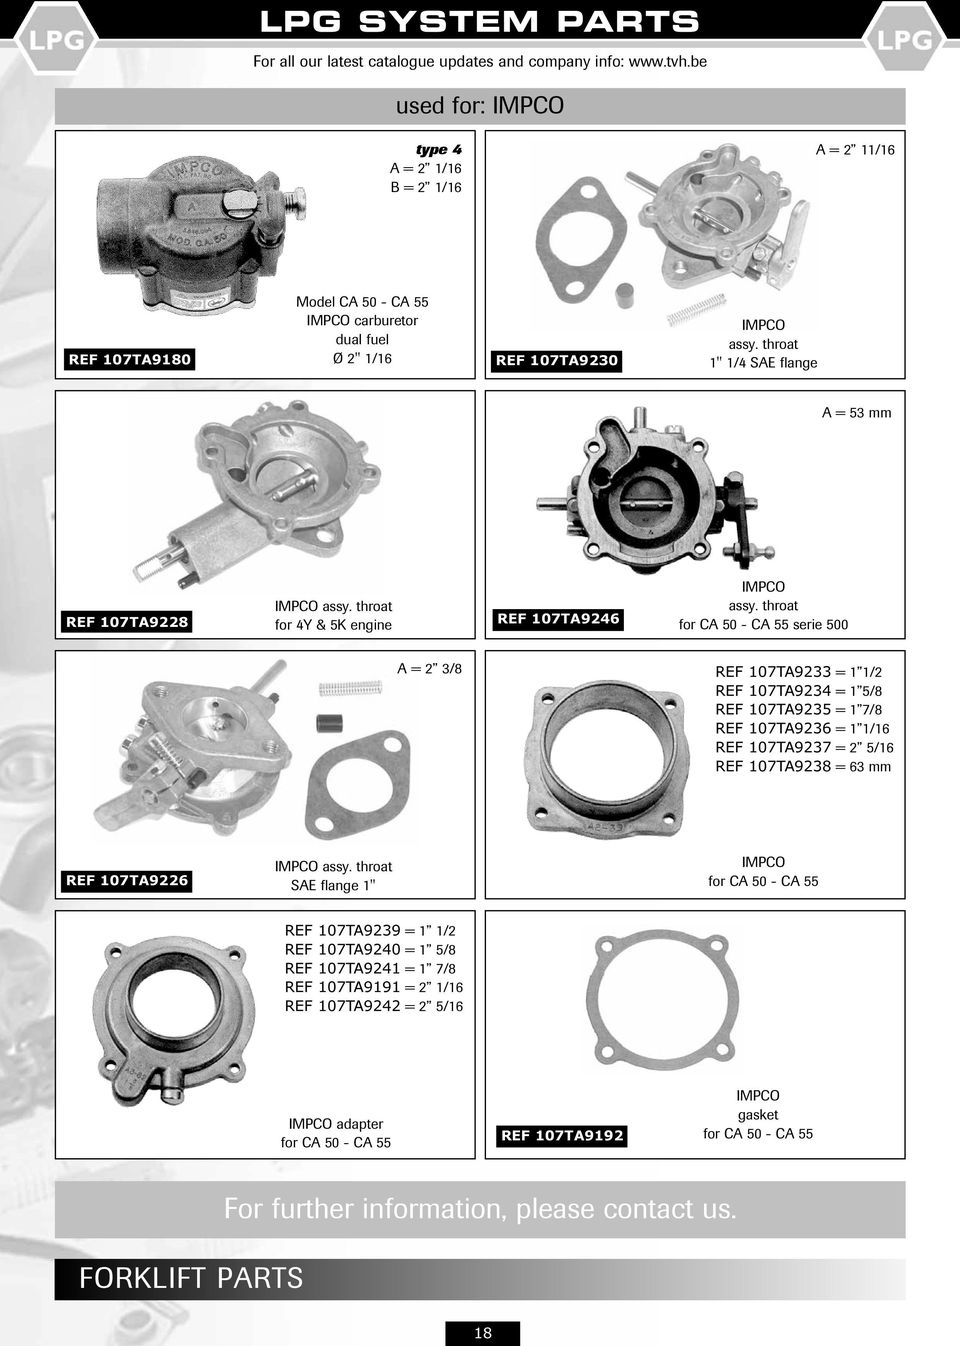 Lpg System Parts Ref Division Pdf Zenith Carburetor Diagram On Exploded Throat For Ca 50 55 Serie 500 A 2 3 8